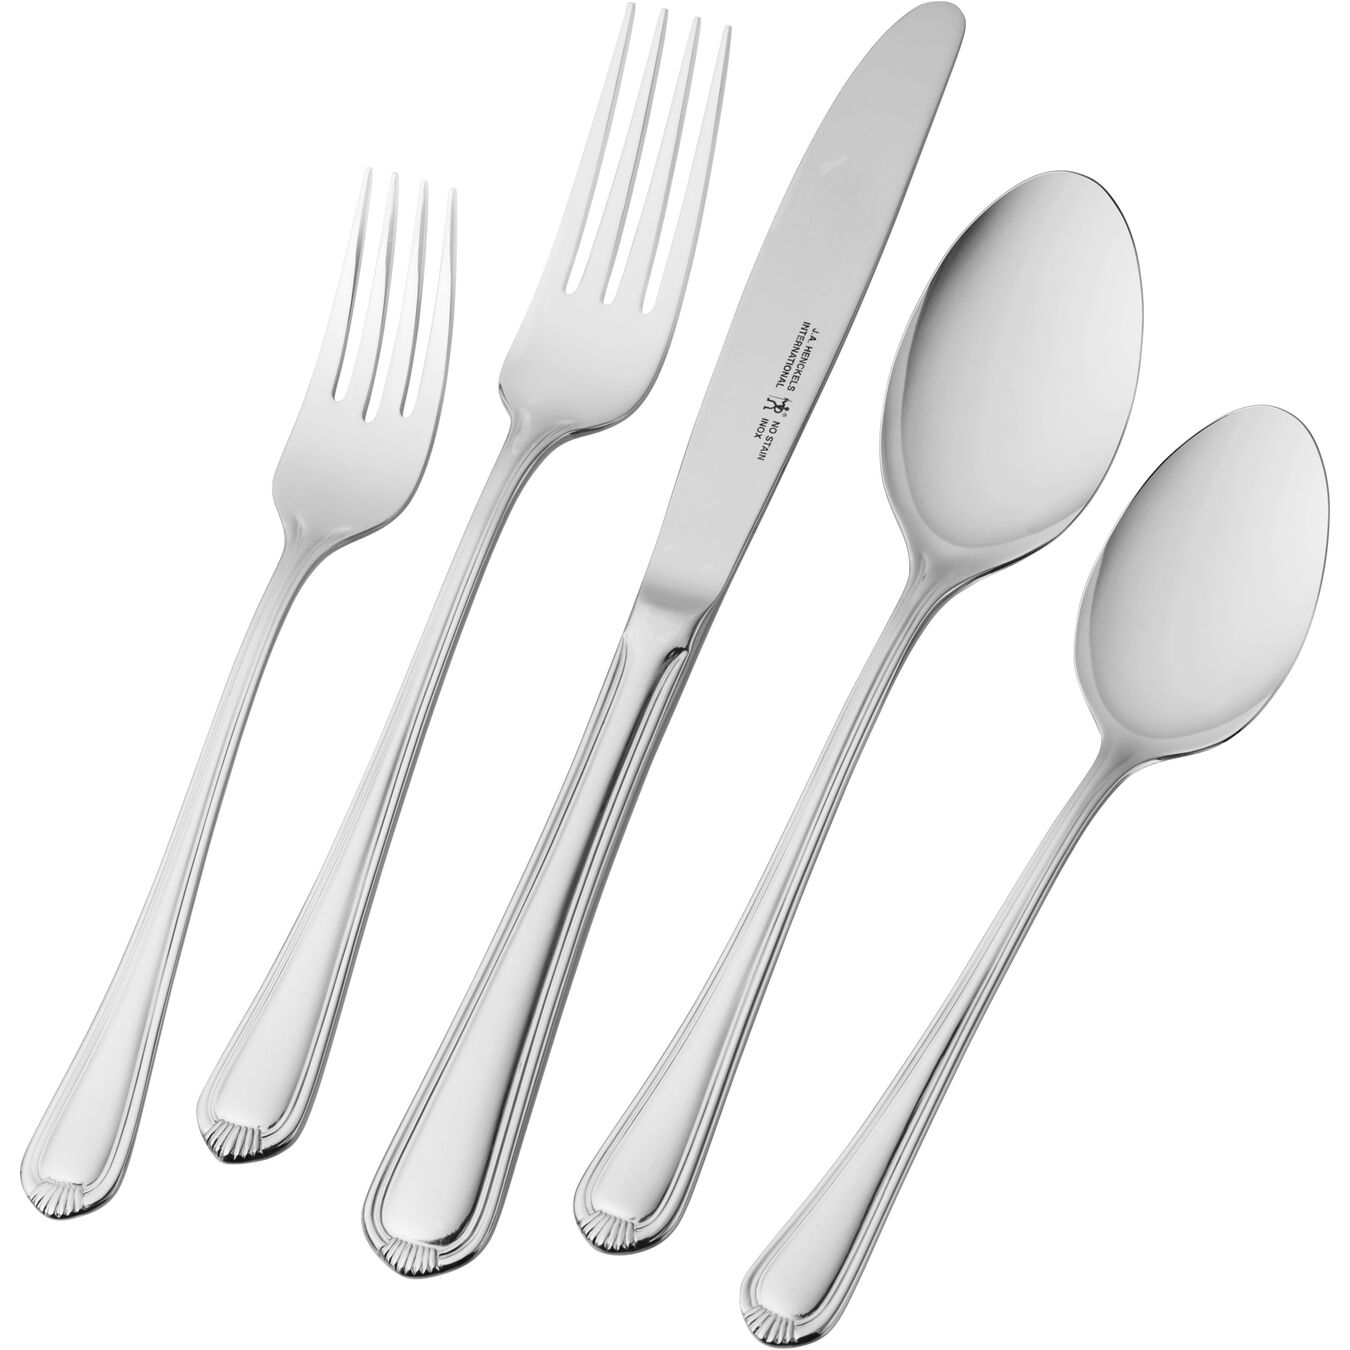 65-pc Flatware Set, 18/10 Stainless Steel ,,large 1